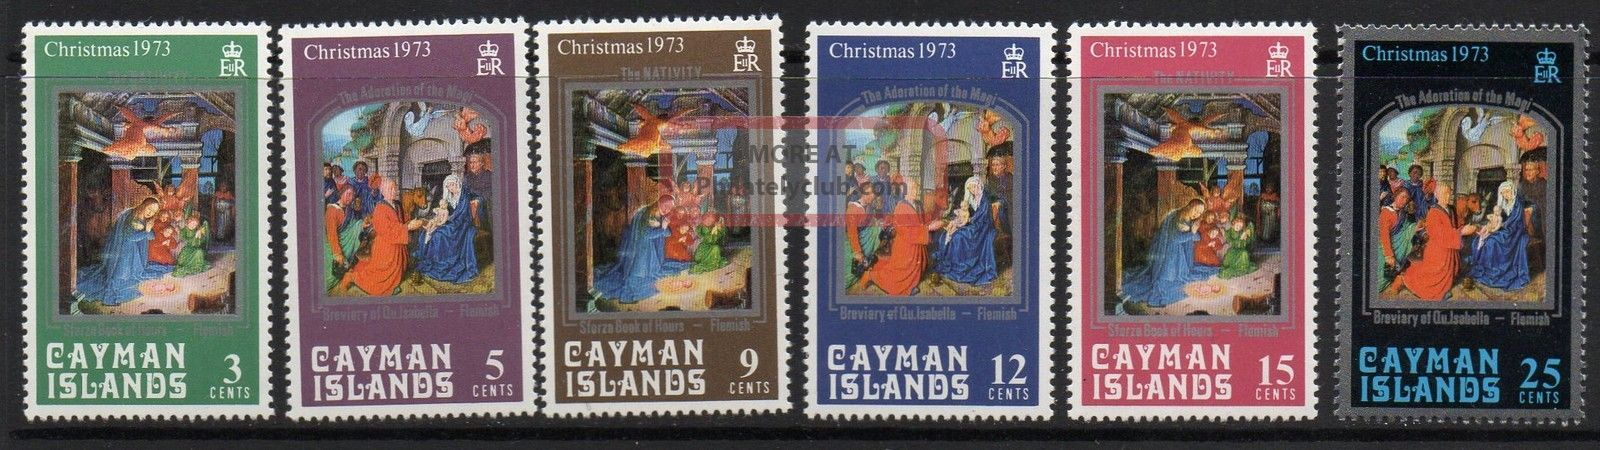 Cayman Islands Sg329/34 1973 Christmas British Colonies & Territories photo